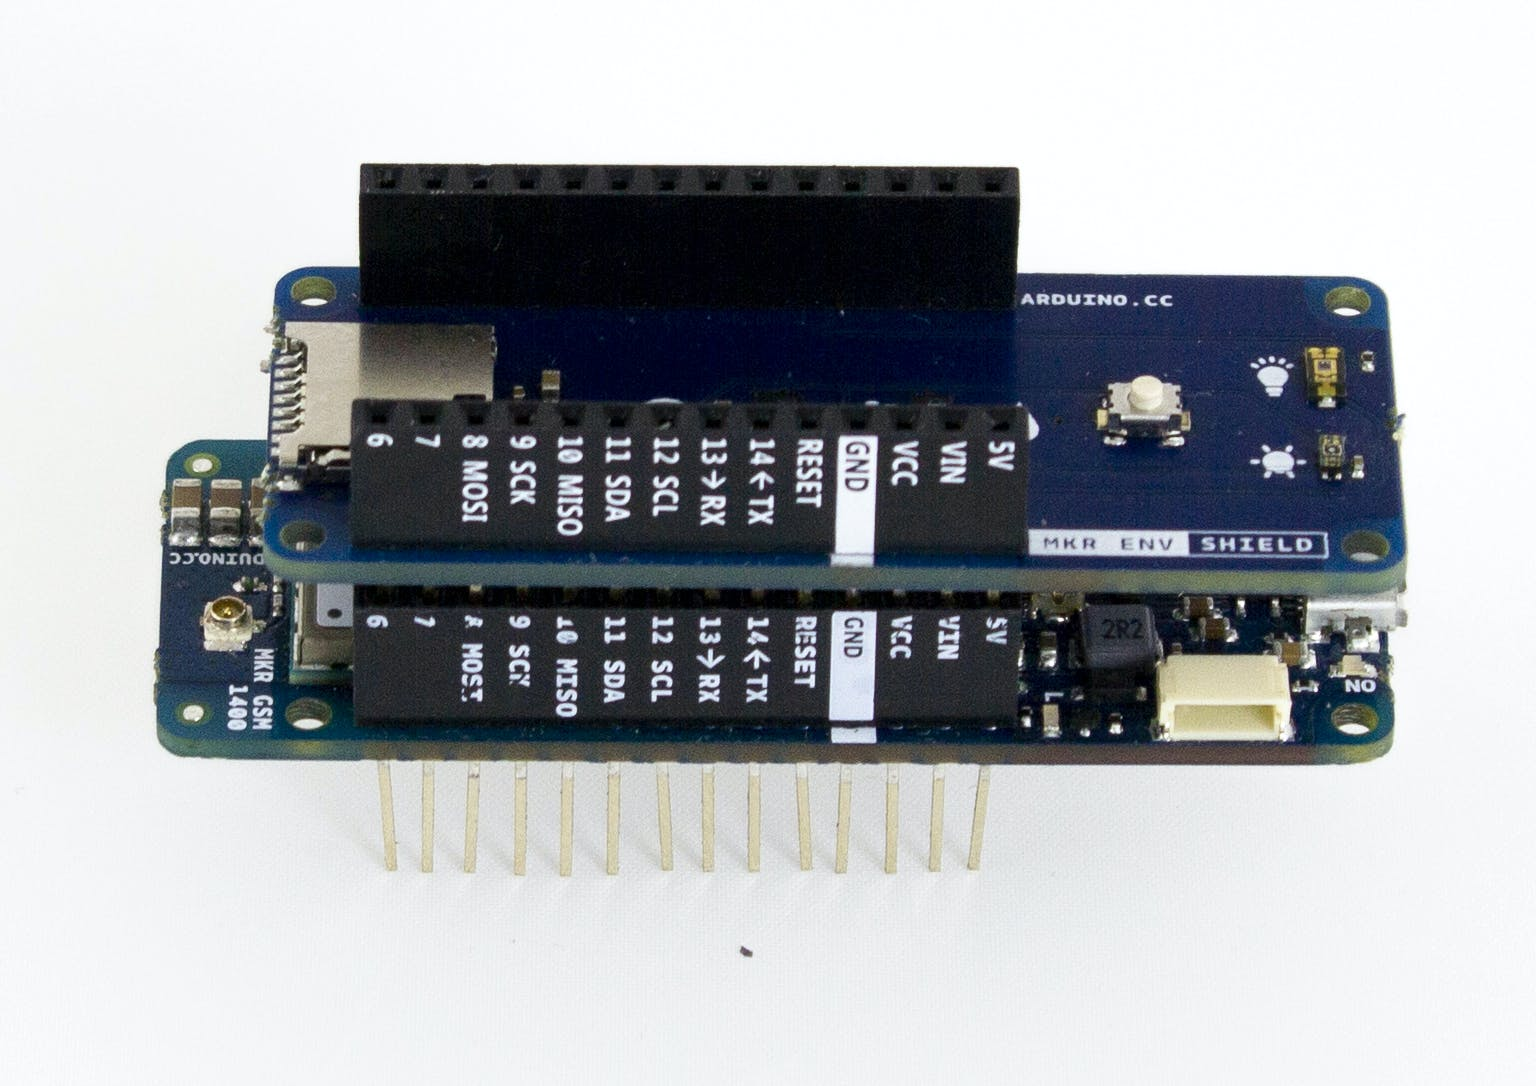 Carefully plug the MKR ENV Shield in the MKR GSM 1400 connector